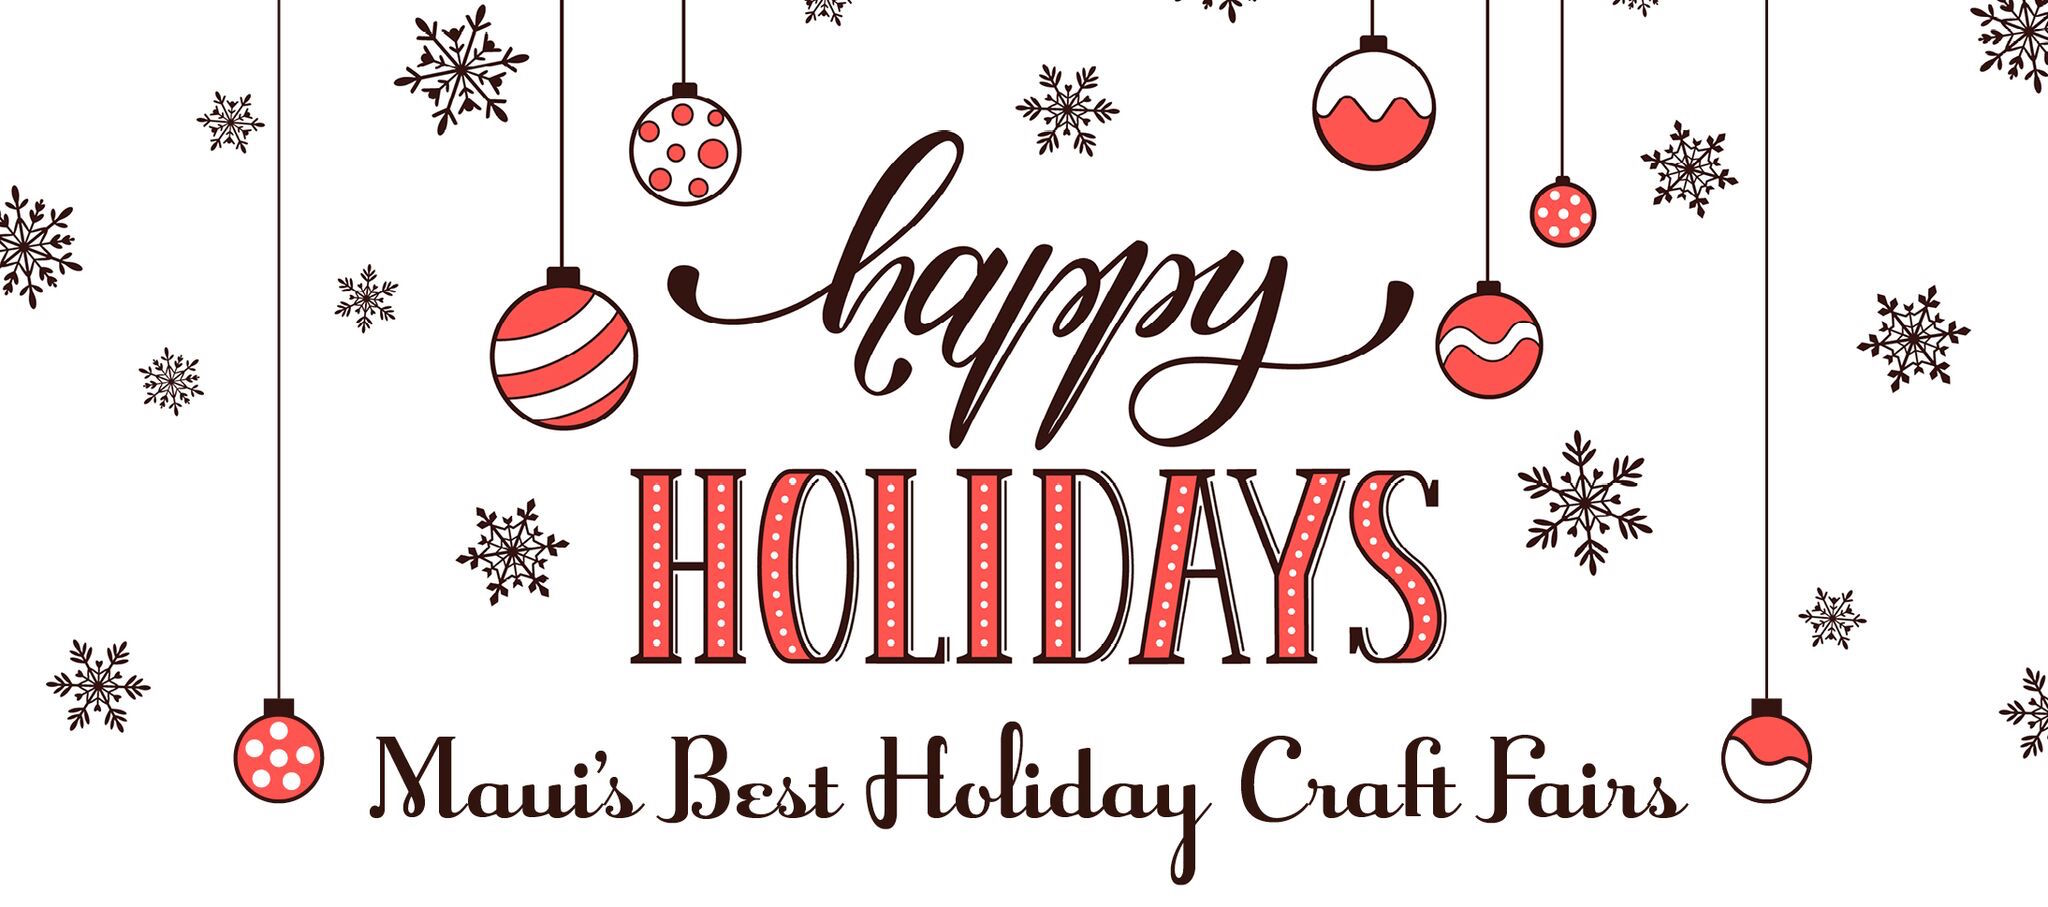 holiday craft fairs are wonderful places to shop for unique gifts for the holidays and to create special holiday memories mark your calendar for a variety